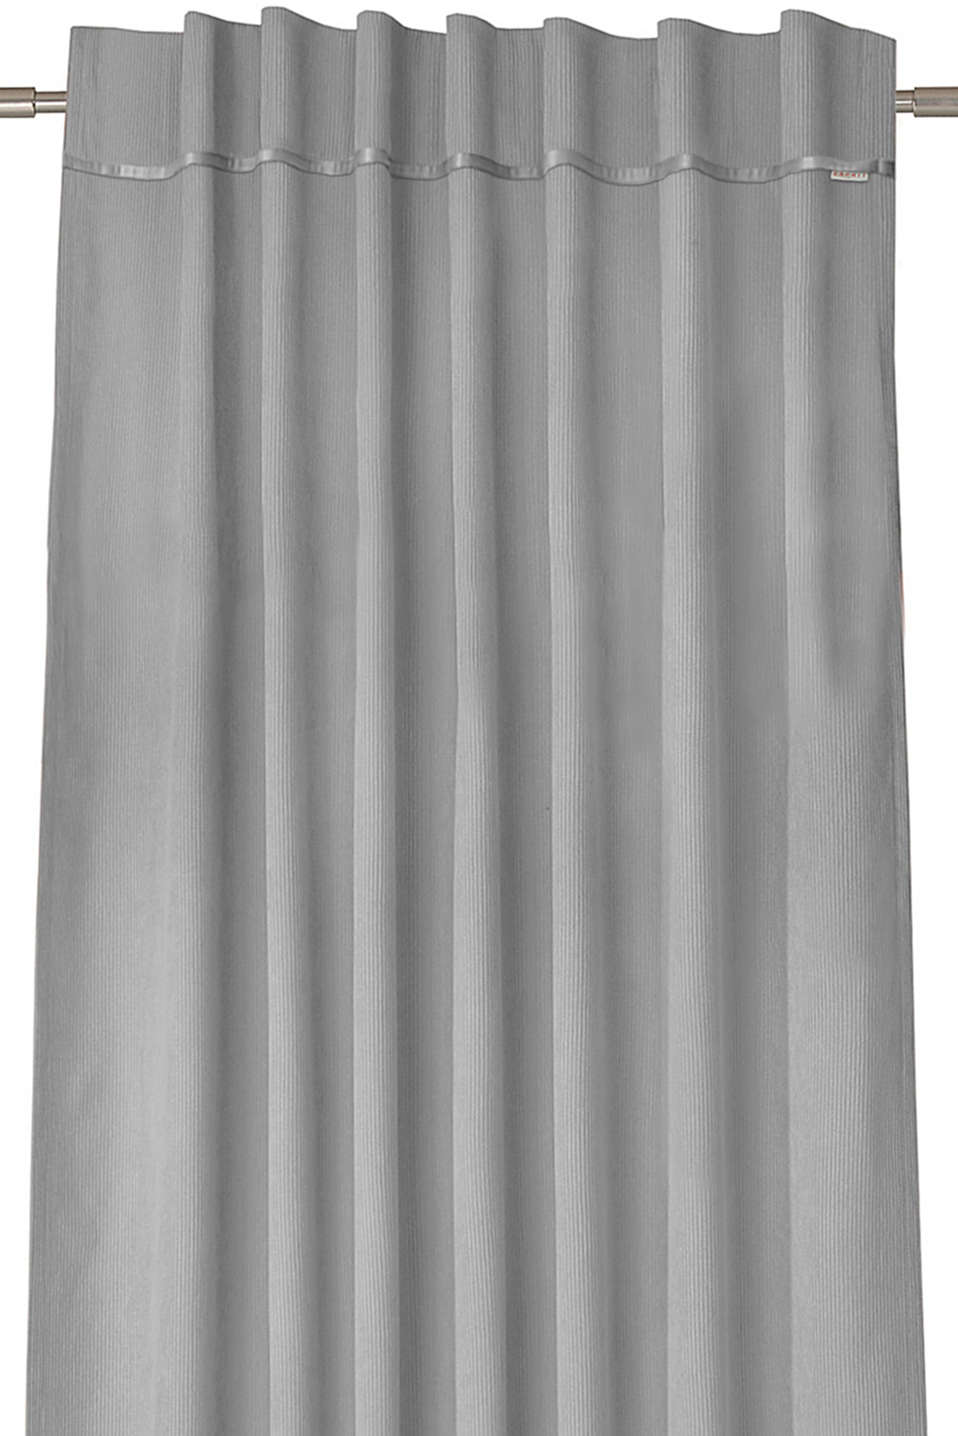 Esprit - Corduroy curtains with concealed loops